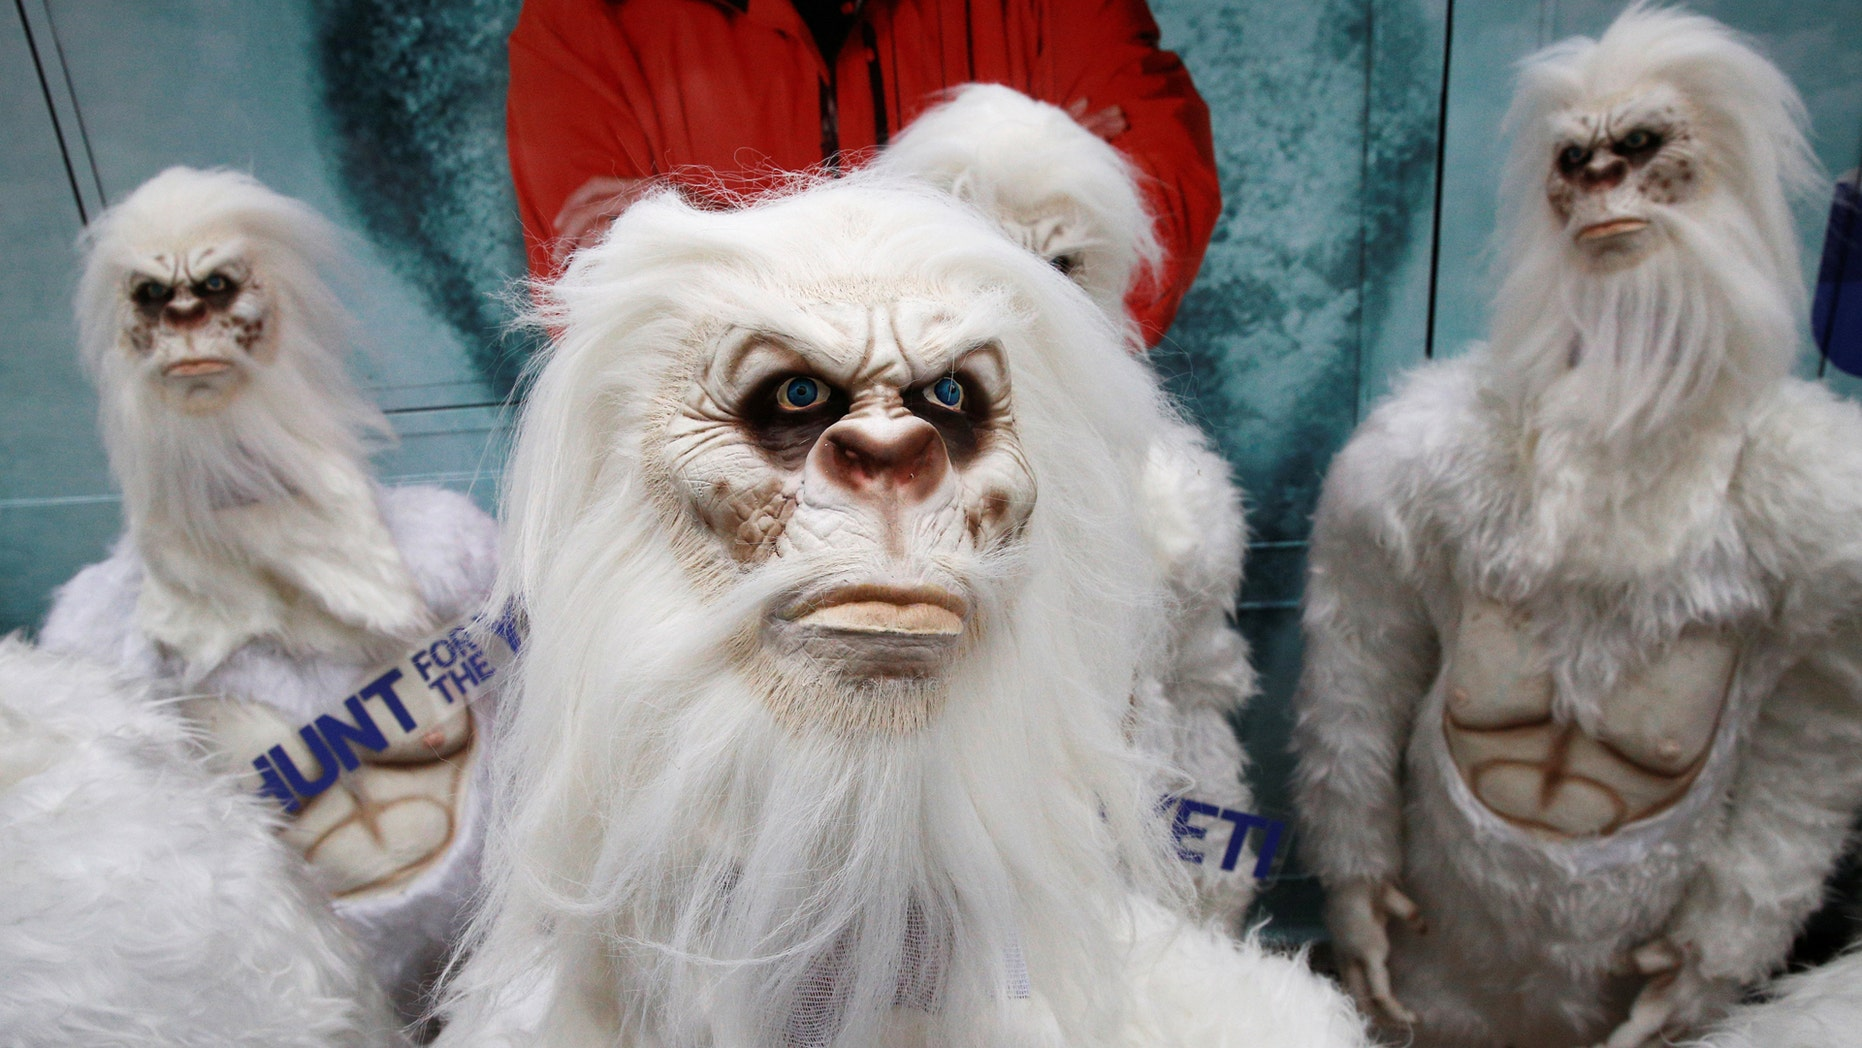 """File photo - Actors dressed as a 'Yeti' attend a promotional event for Travel Channel's """"Expedition Unknown: Hunt for the Yeti"""" in Manhattan, New York City, U.S., Oct.4, 2016. (REUTERS/Brendan McDermid)"""